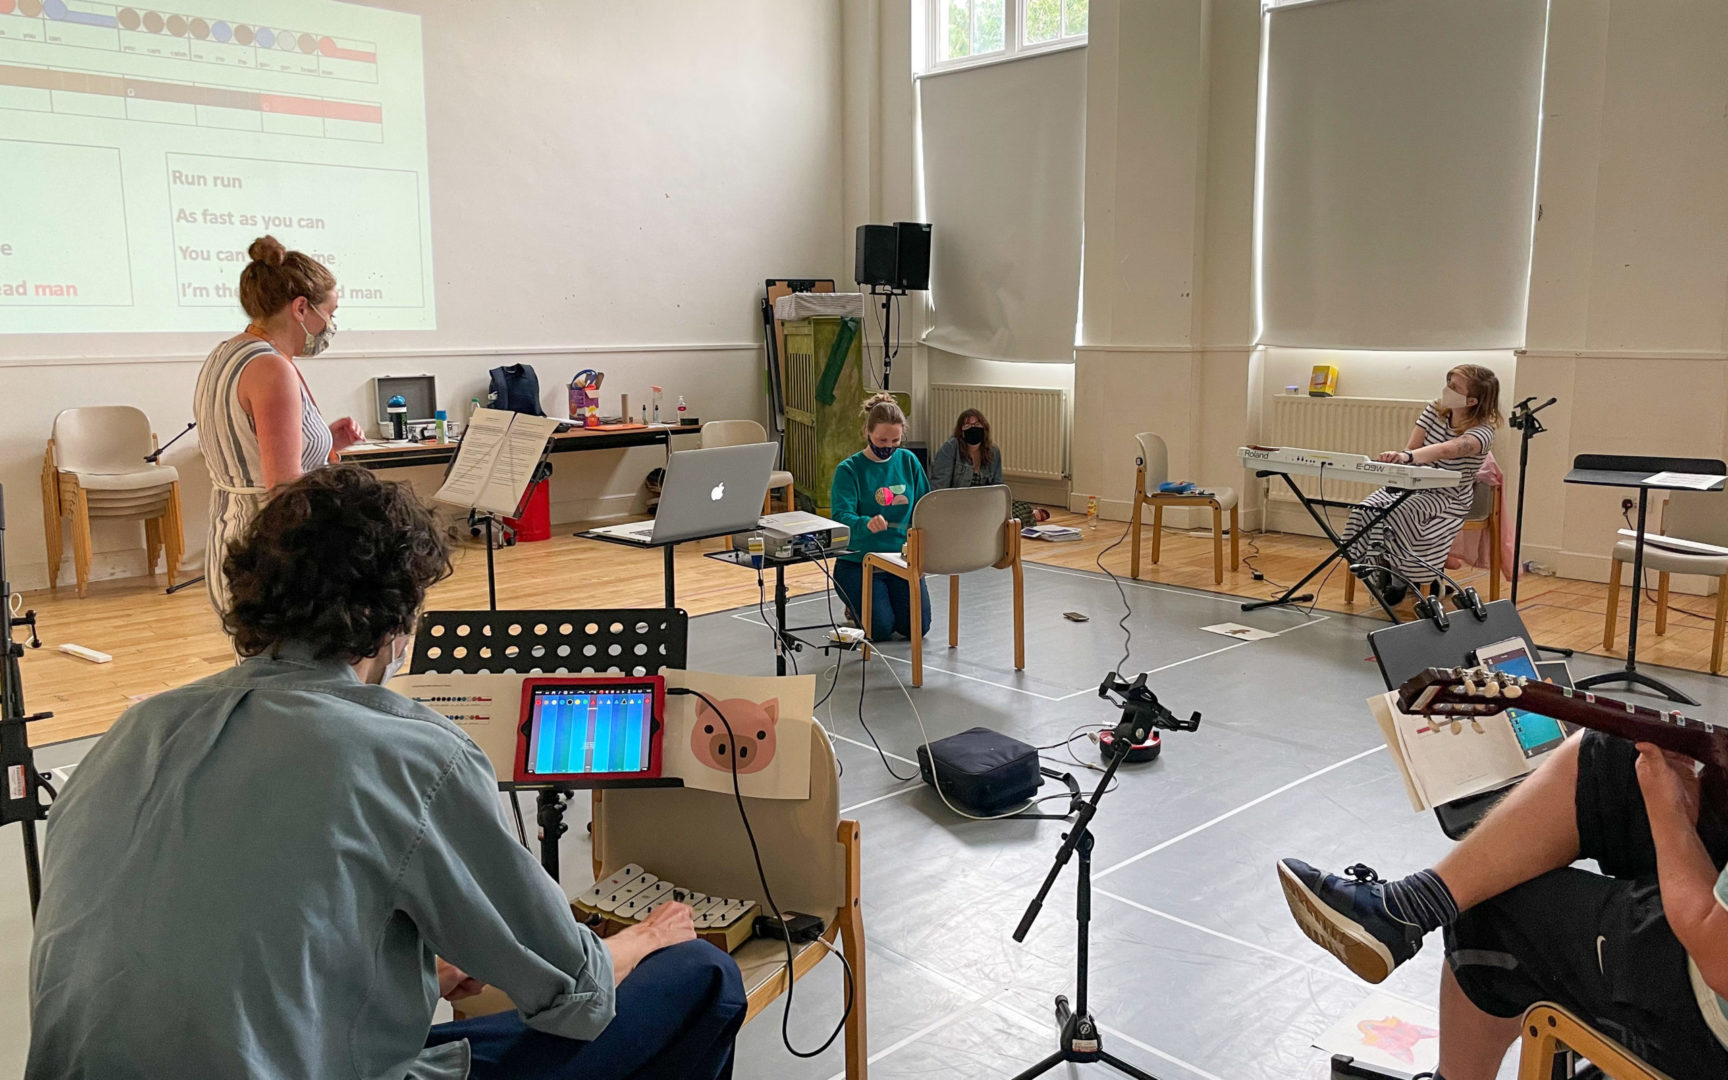 A group of musicians in a hall. A narrator is standing; seated woman on chimes; seated woman on keys; seated man with a pig flashcard, chimes, and an ipad showing Thumbjam. The edge of a guitar and its player can also be seen.